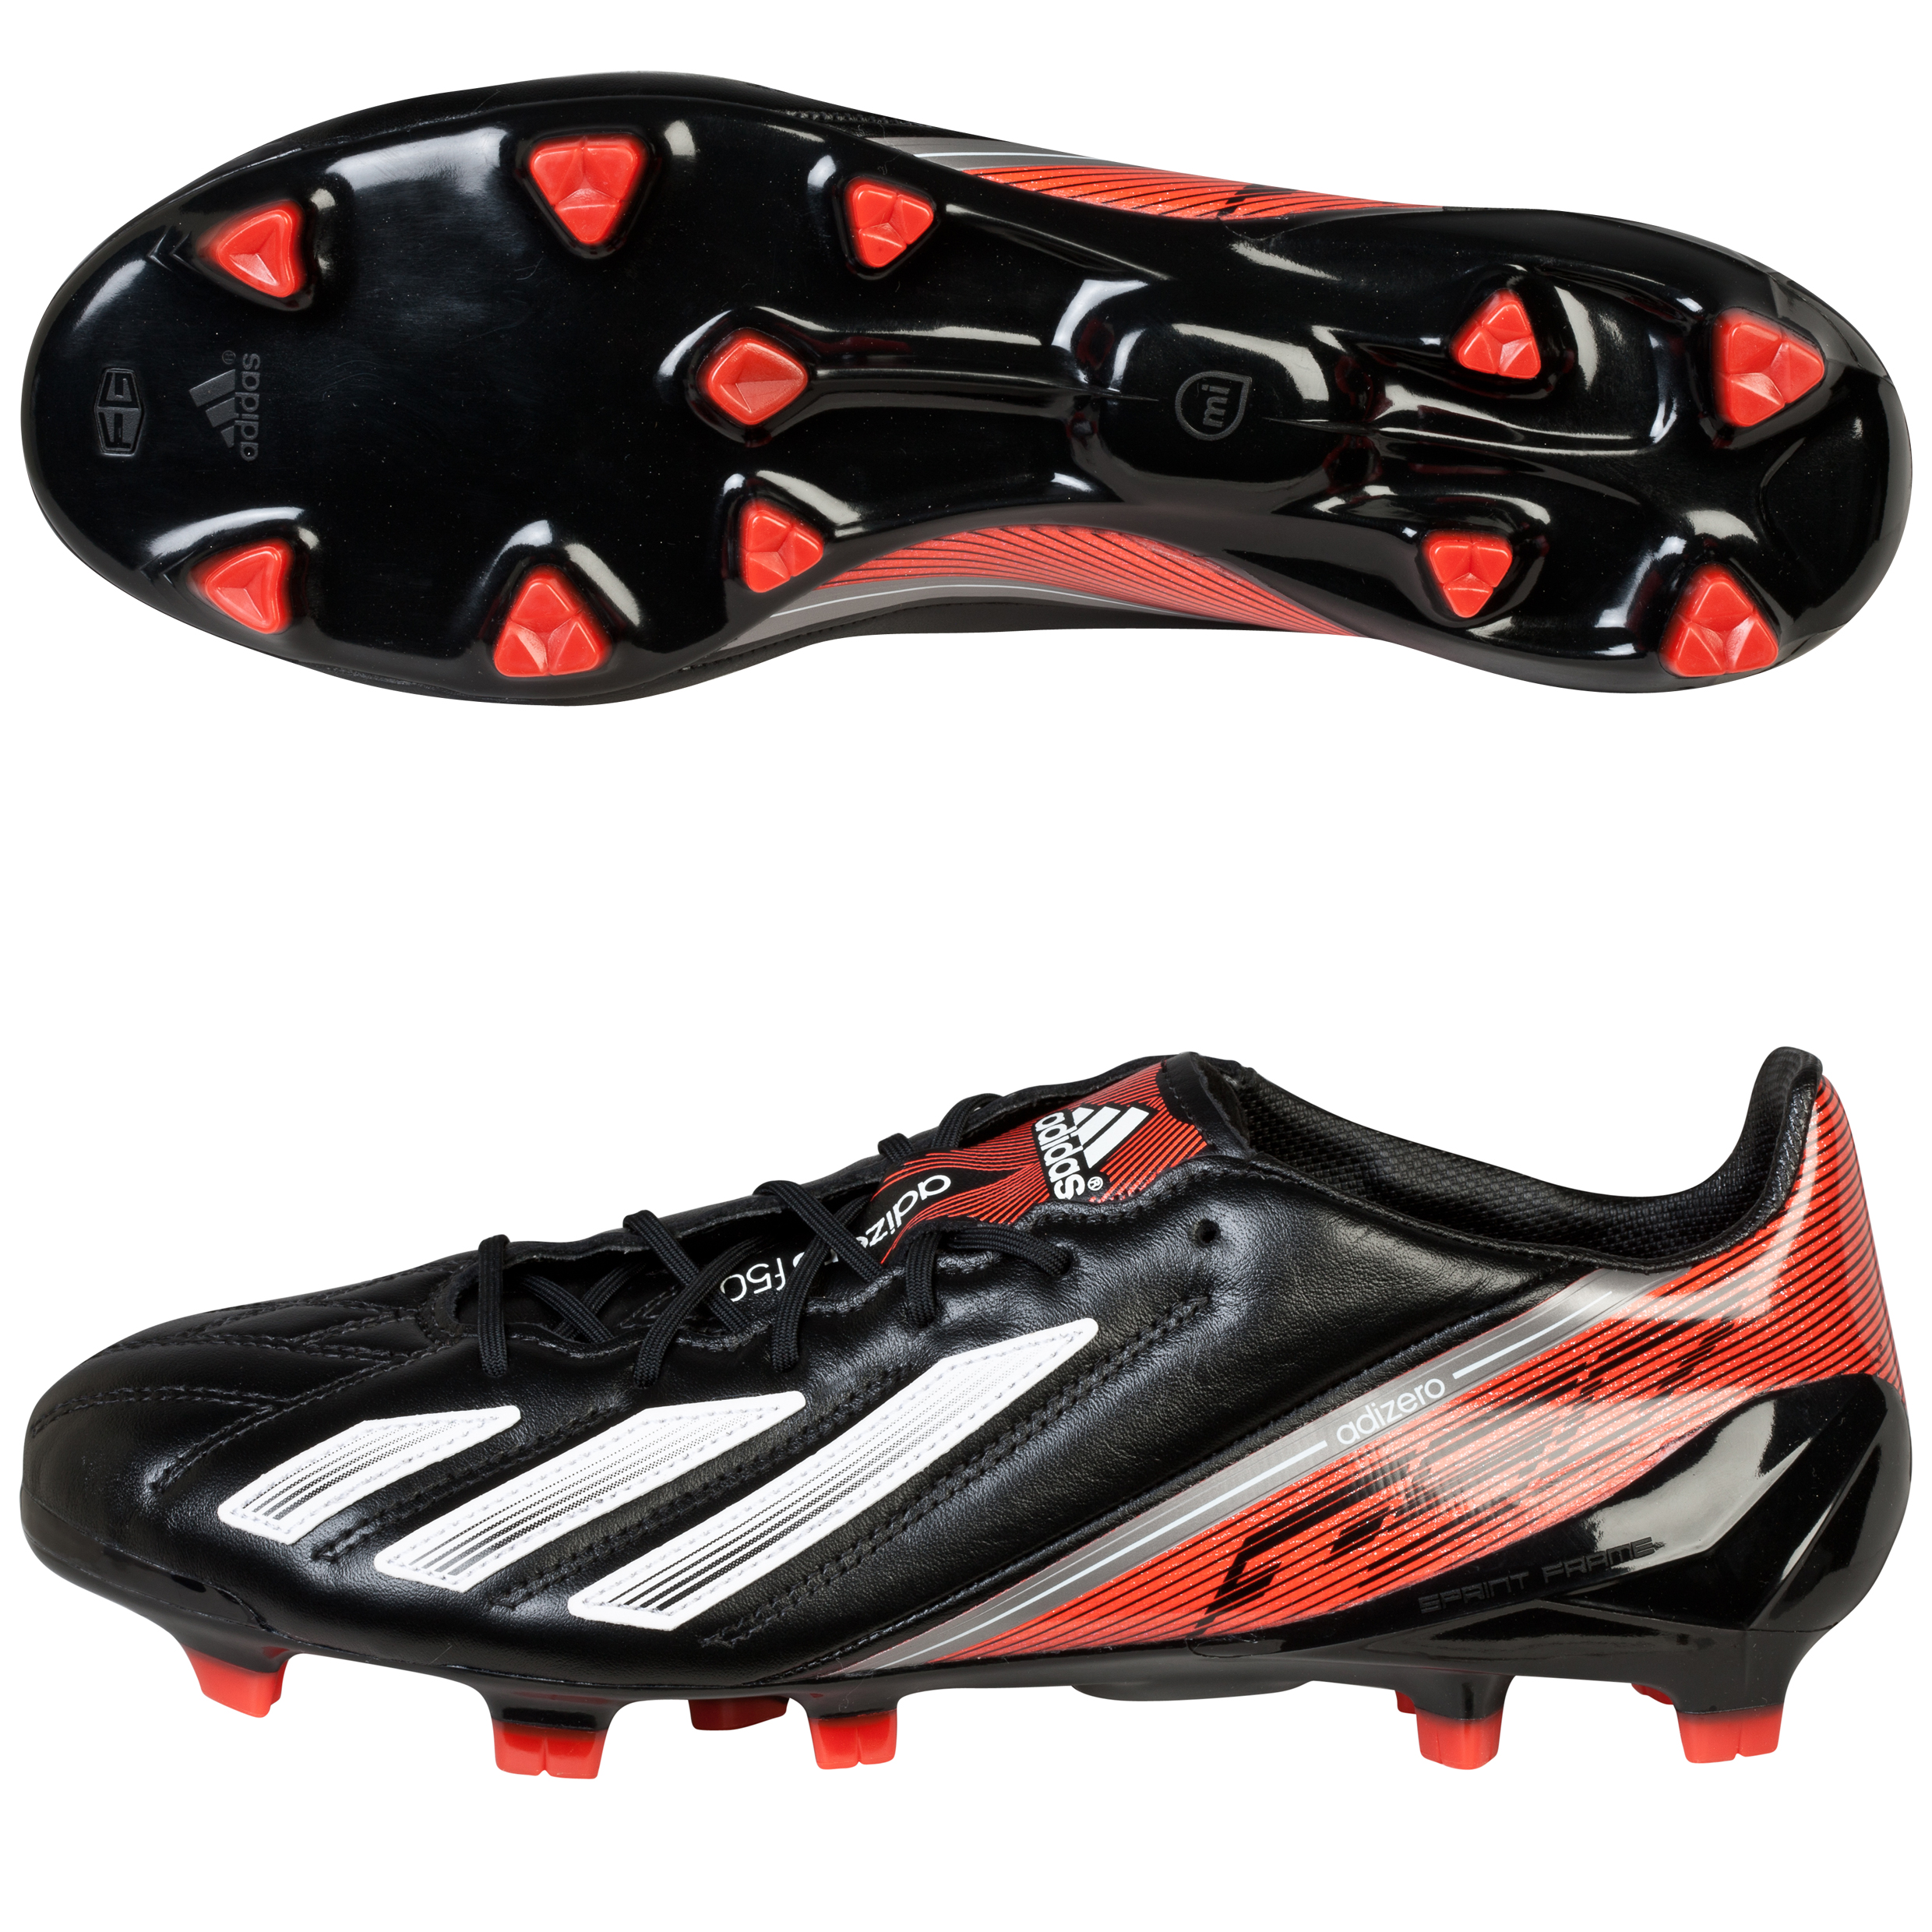 Adidas adizero F50 TRX Leather Firm Ground Football Boots Black